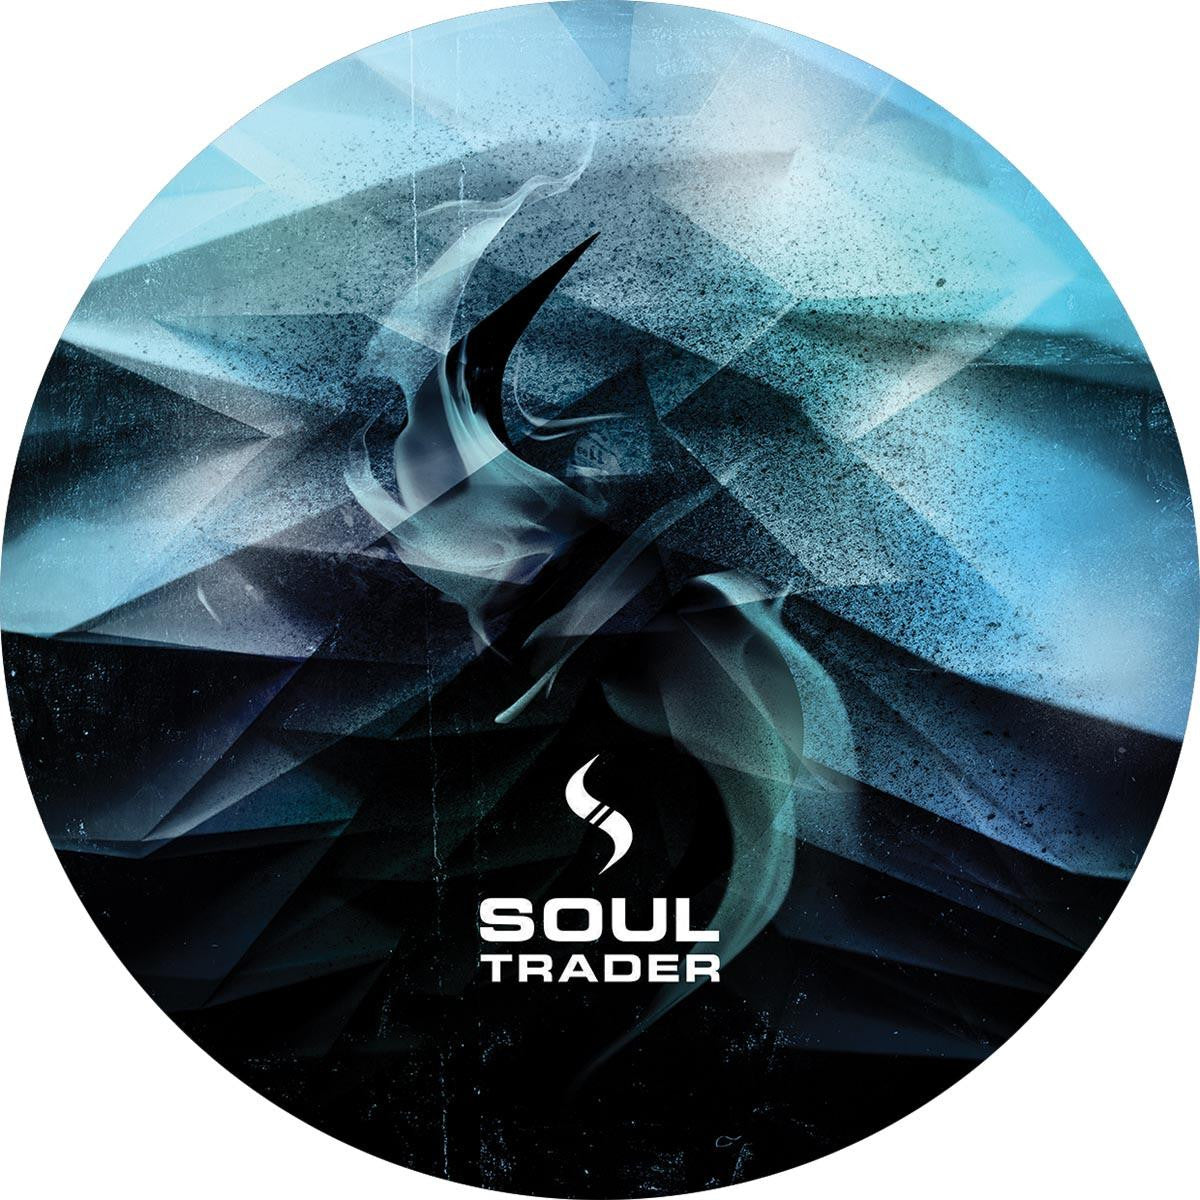 Various Artists - Year of Soul Vol. 1 , Vinyl - Soul Trader Records, Unearthed Sounds